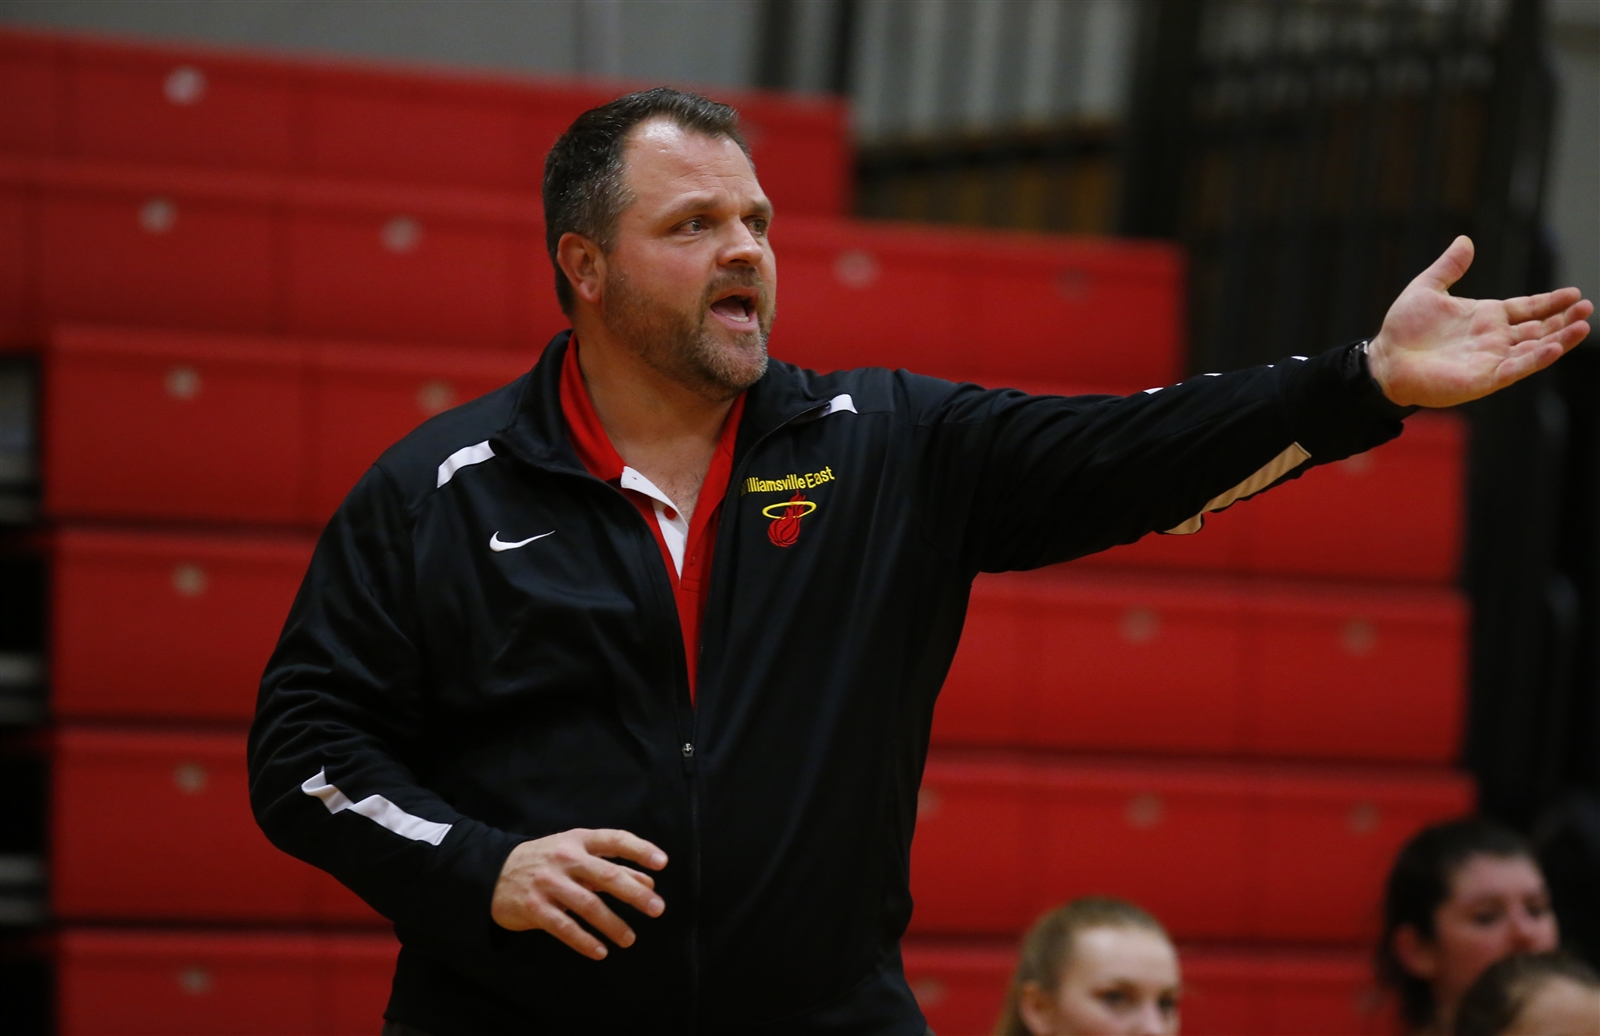 Williamsville East coach Chris Durr calls out to his team against Kenmore East during first half action of a 49-42 loss to the Bulldogs.